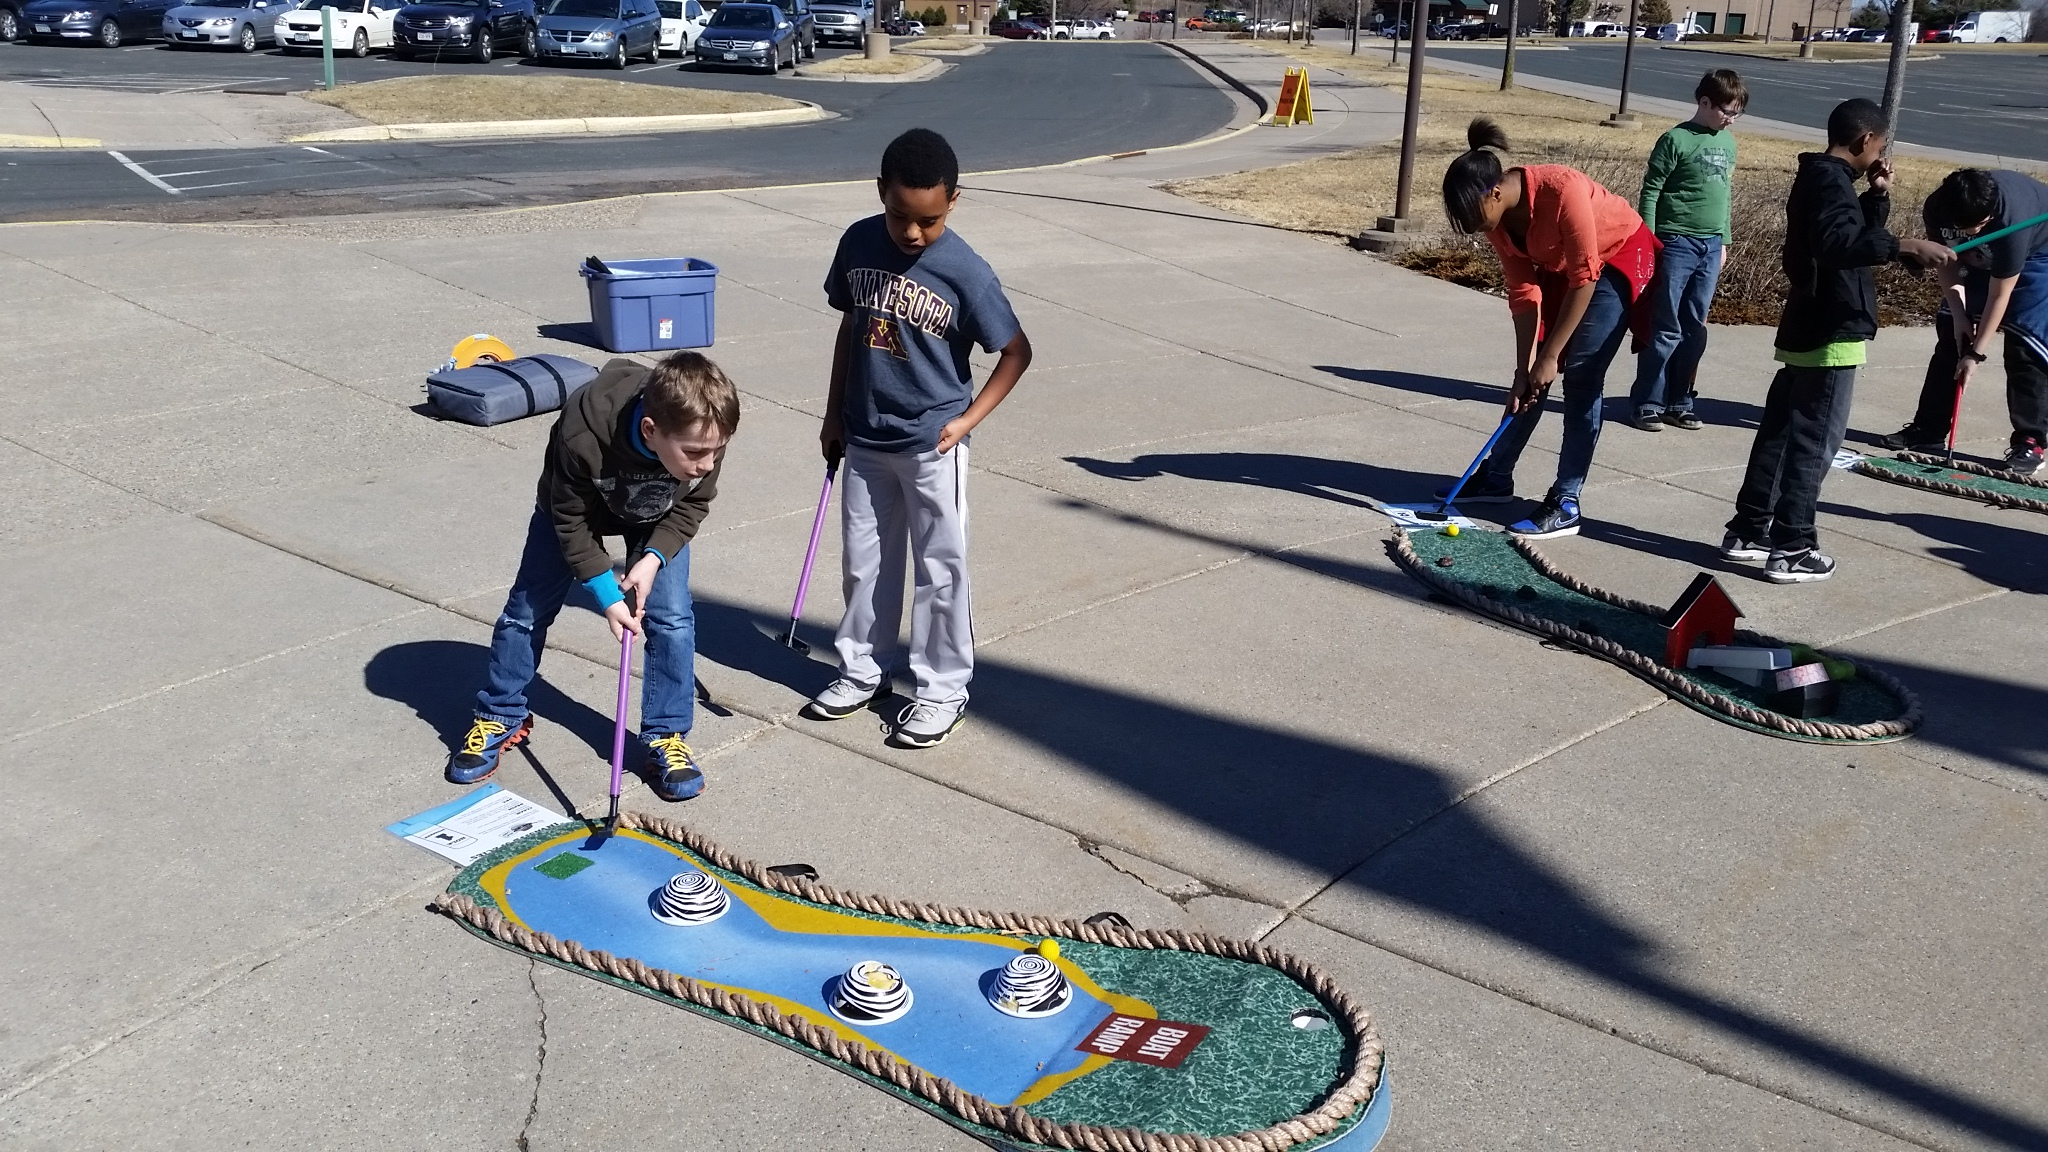 Kids playing putt putt in a parking lot